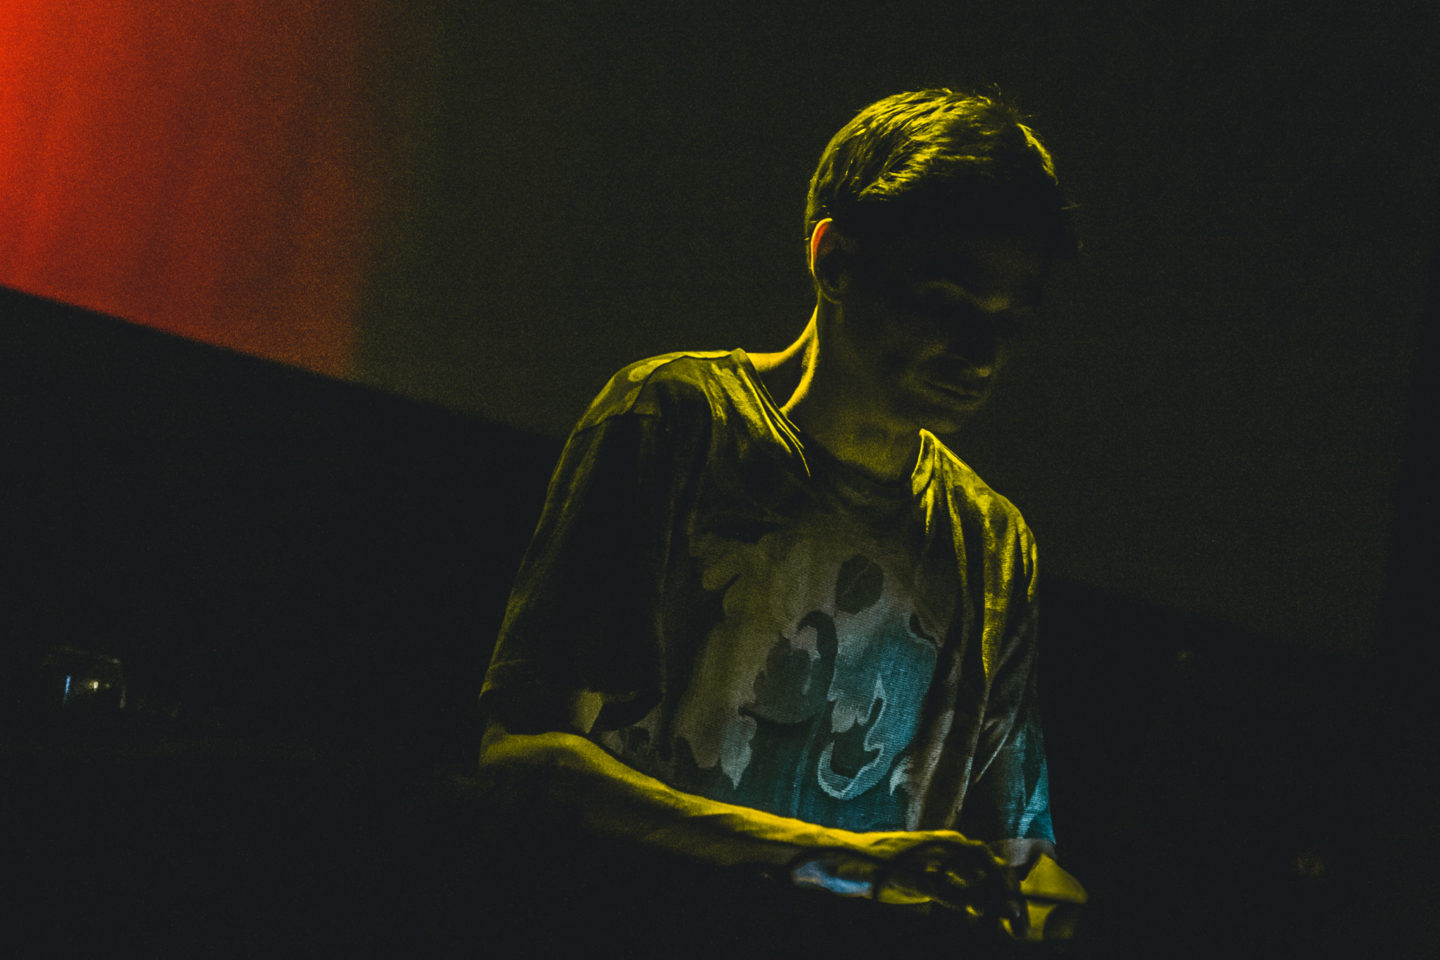 Jon Hopkins at Thalia Hall Chicago